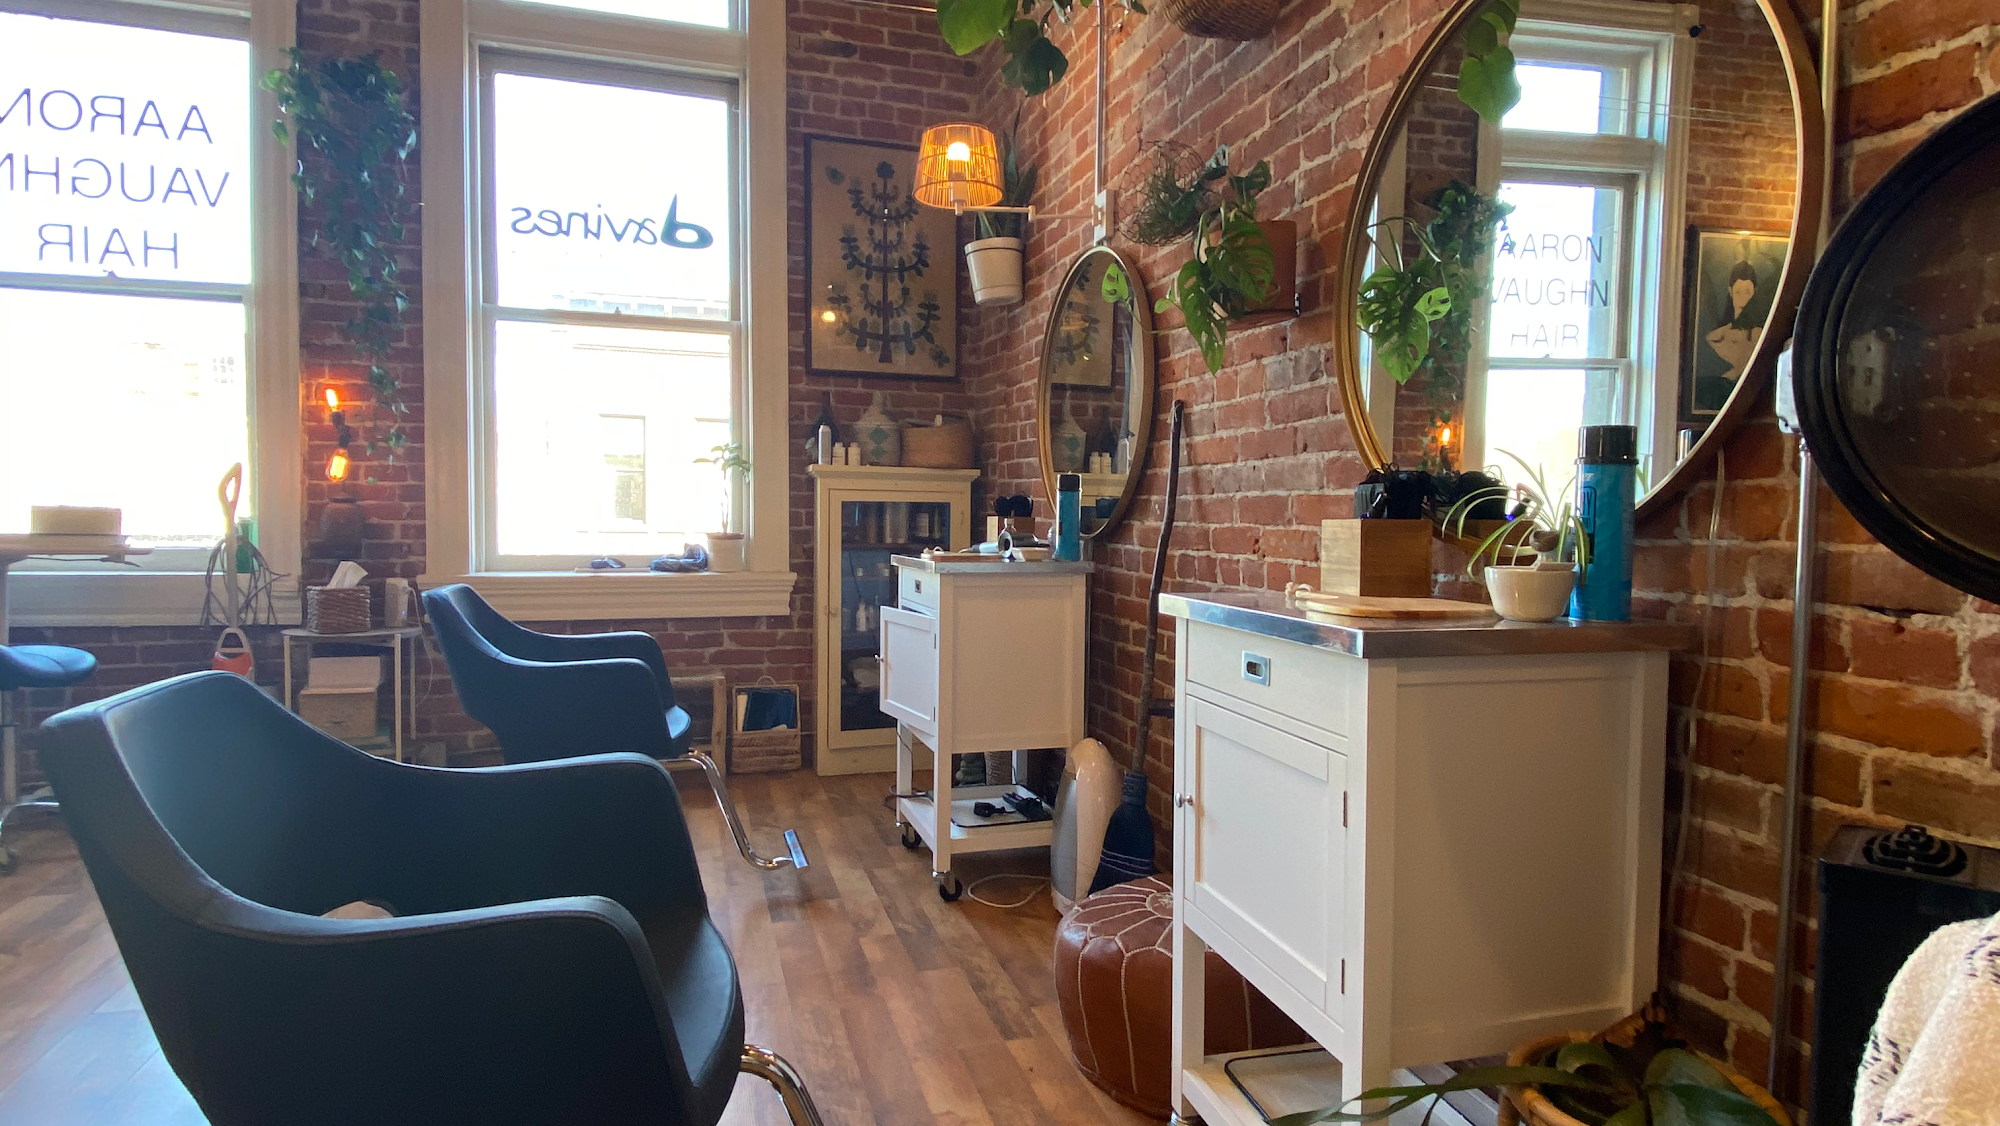 AARON VAUGHN HAIR balayage hair color specialist 211 Taylor St UNIT 18, Port Townsend